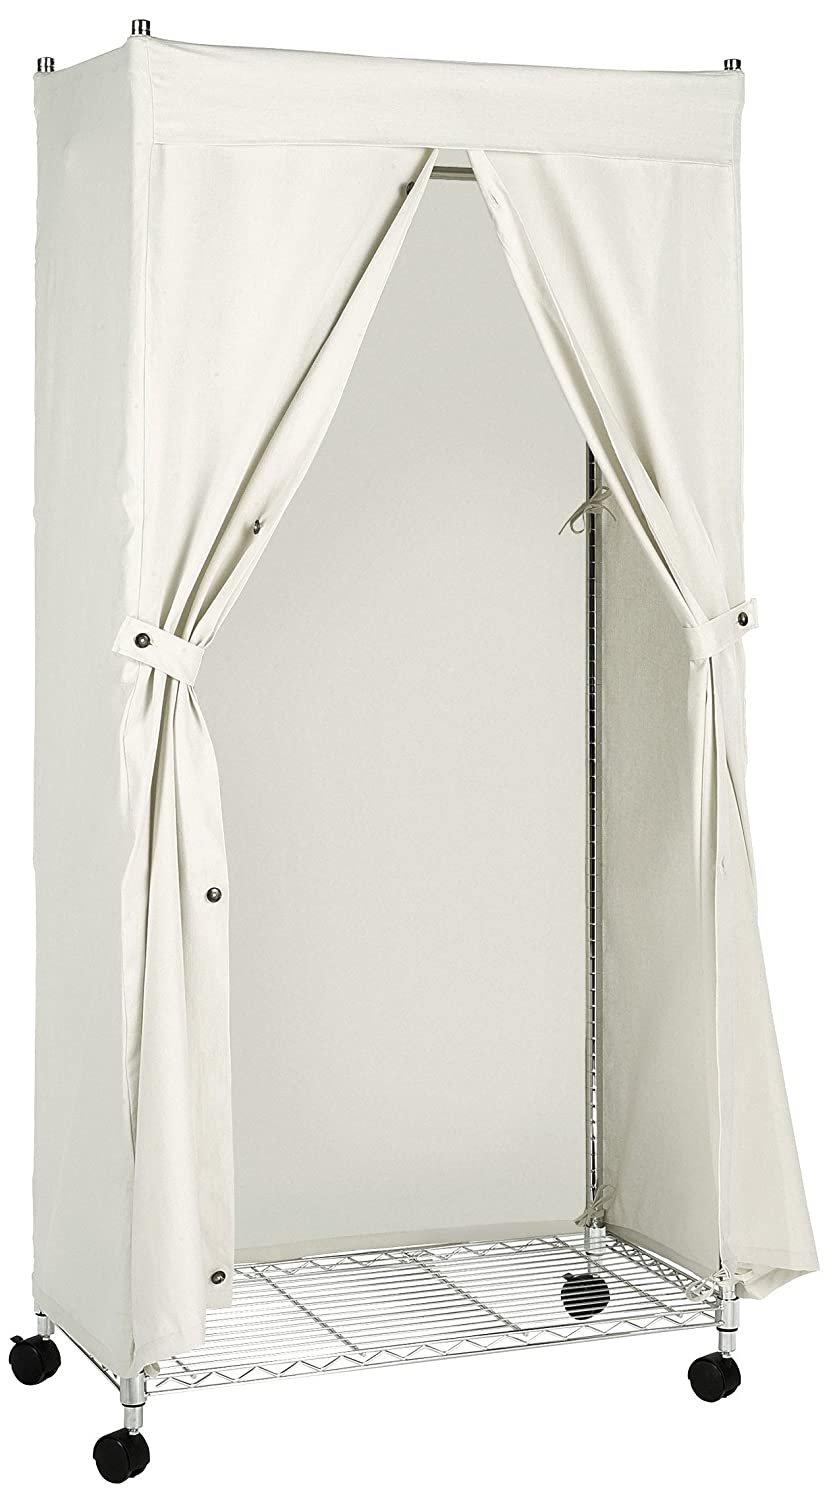 Amazon.com: Whitmor Canvas COVER ONLY for Garment Rack: Home & Kitchen